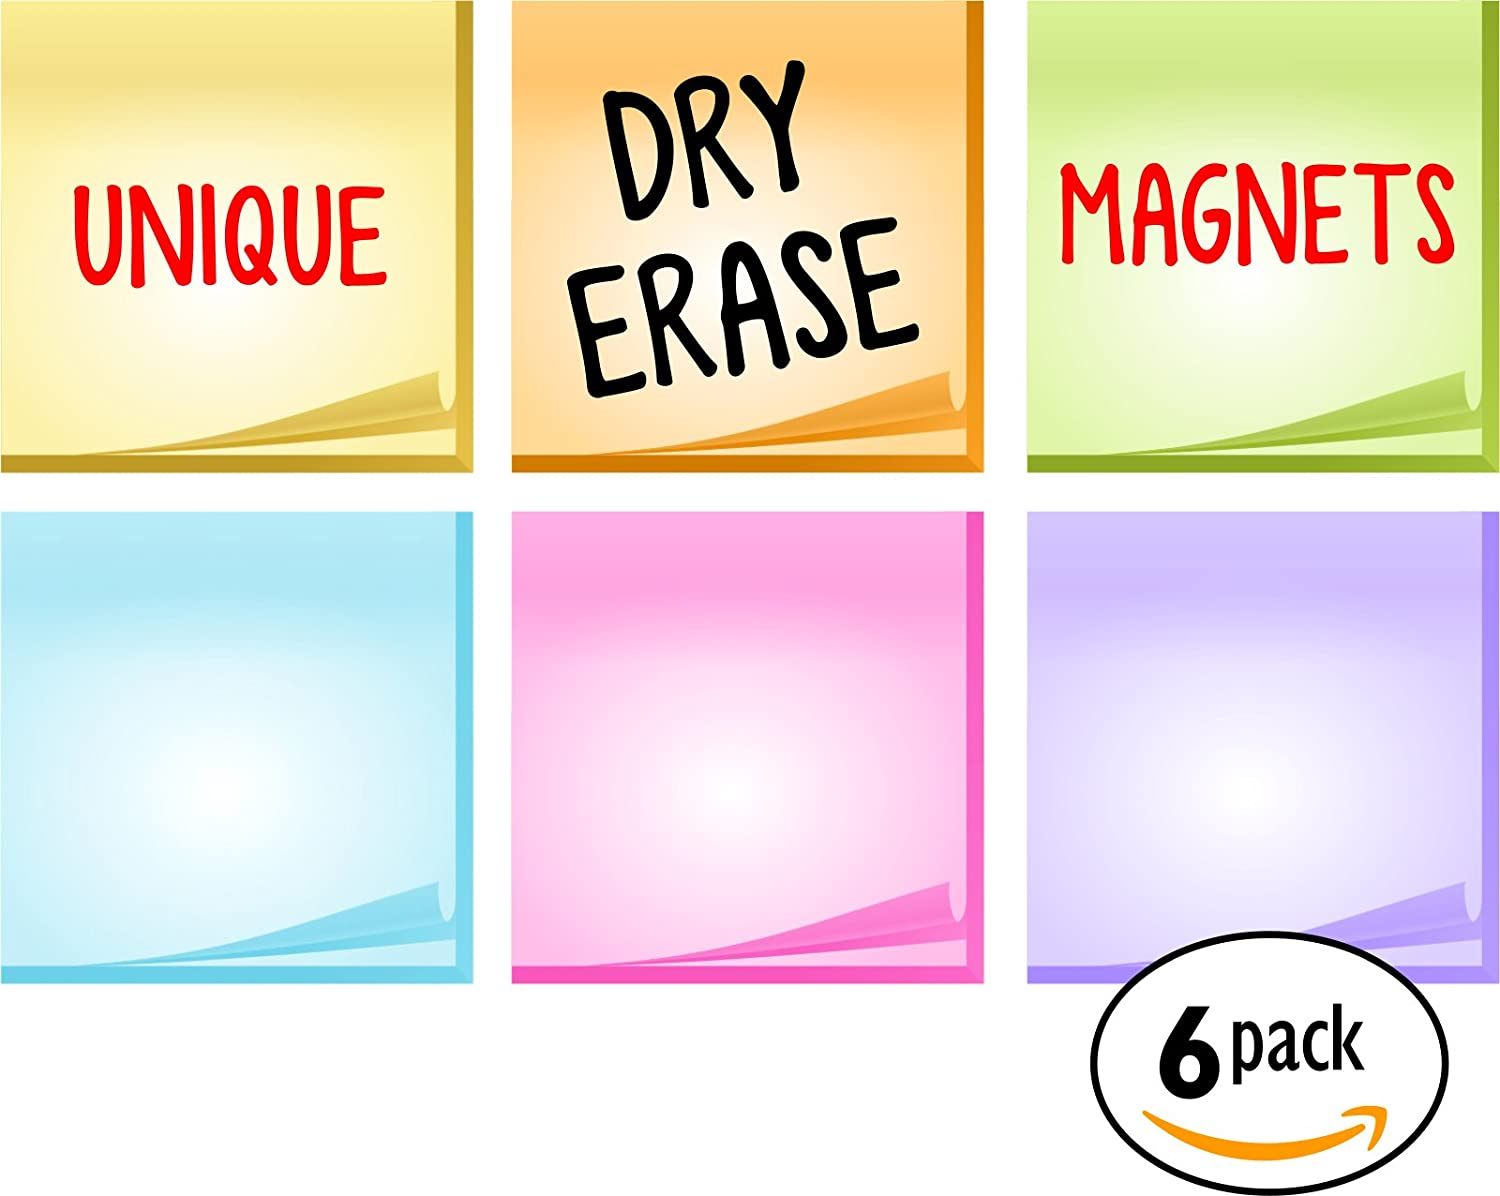 Bigtime Dry Erase Magnetic - Post It Notes Design for Refrigerator | Endless Uses | Use as Reward or Behavior Chart | To Do List or Daily Planner ( 6pc Set )